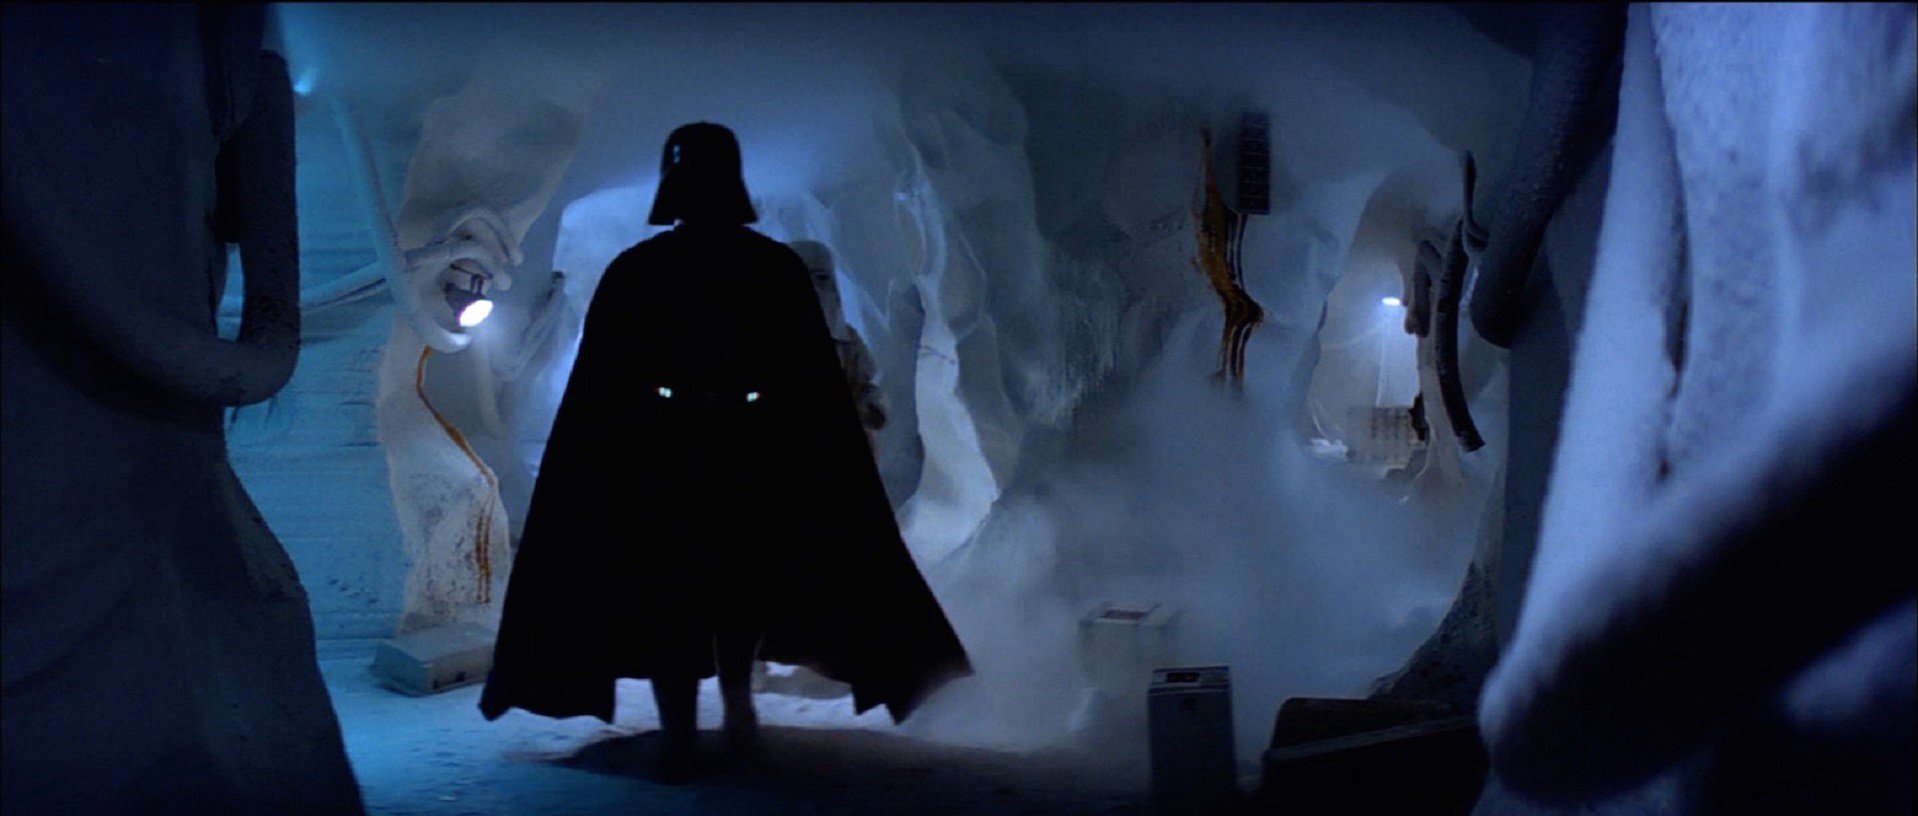 g11 20 Things You Didn't Know About The Empire Strikes Back